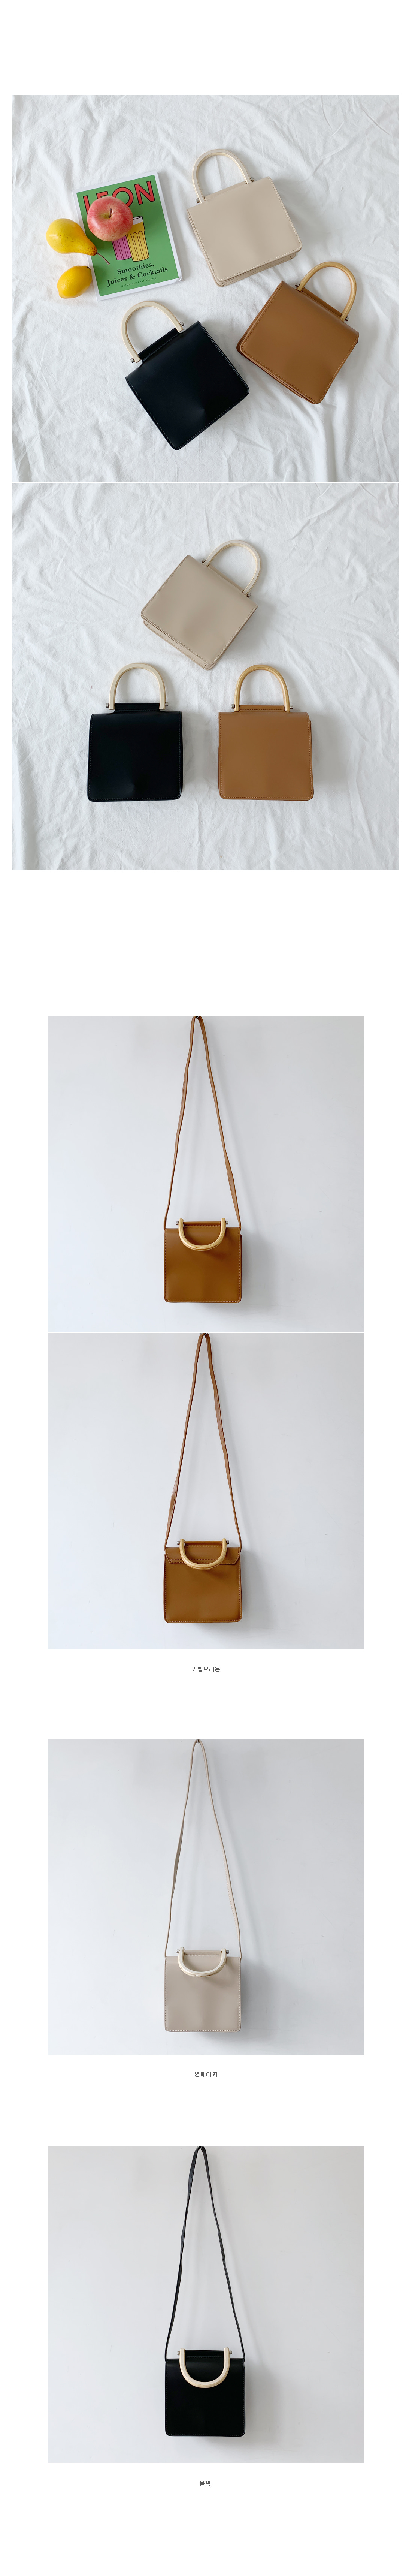 Wood Tote, Cross-bag-Light Beige Same Day Shipping